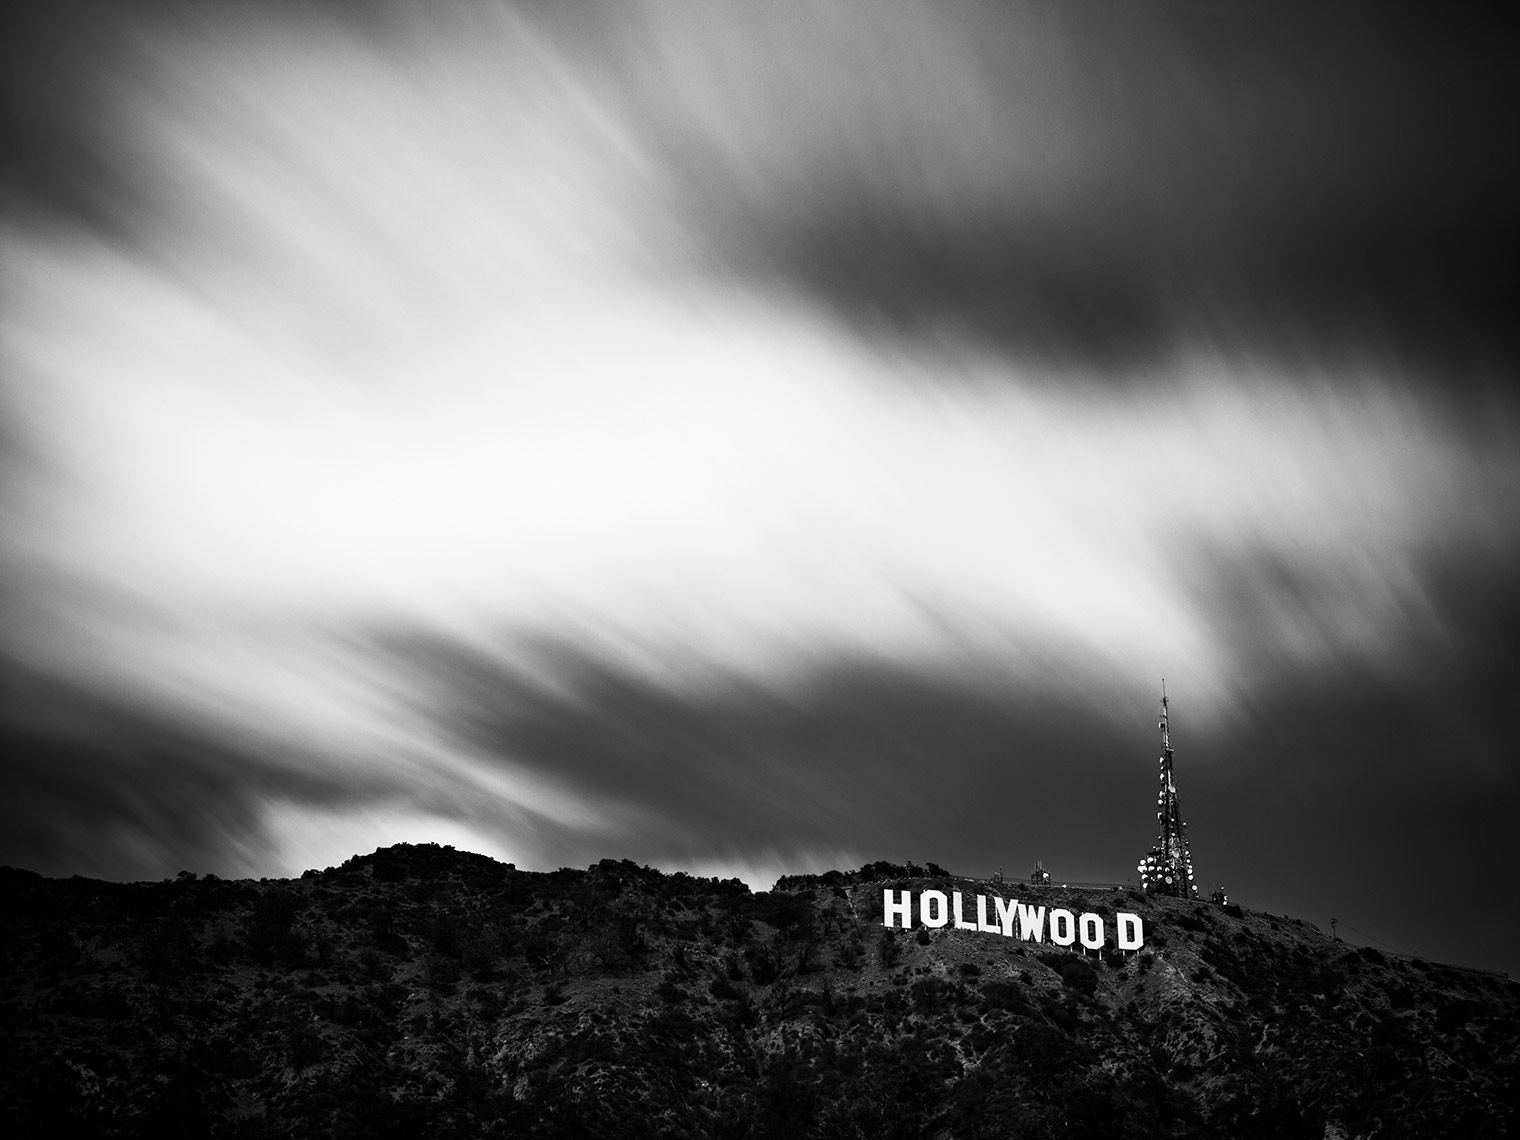 025-150430_HollywoodSign-0014-BW-FInal